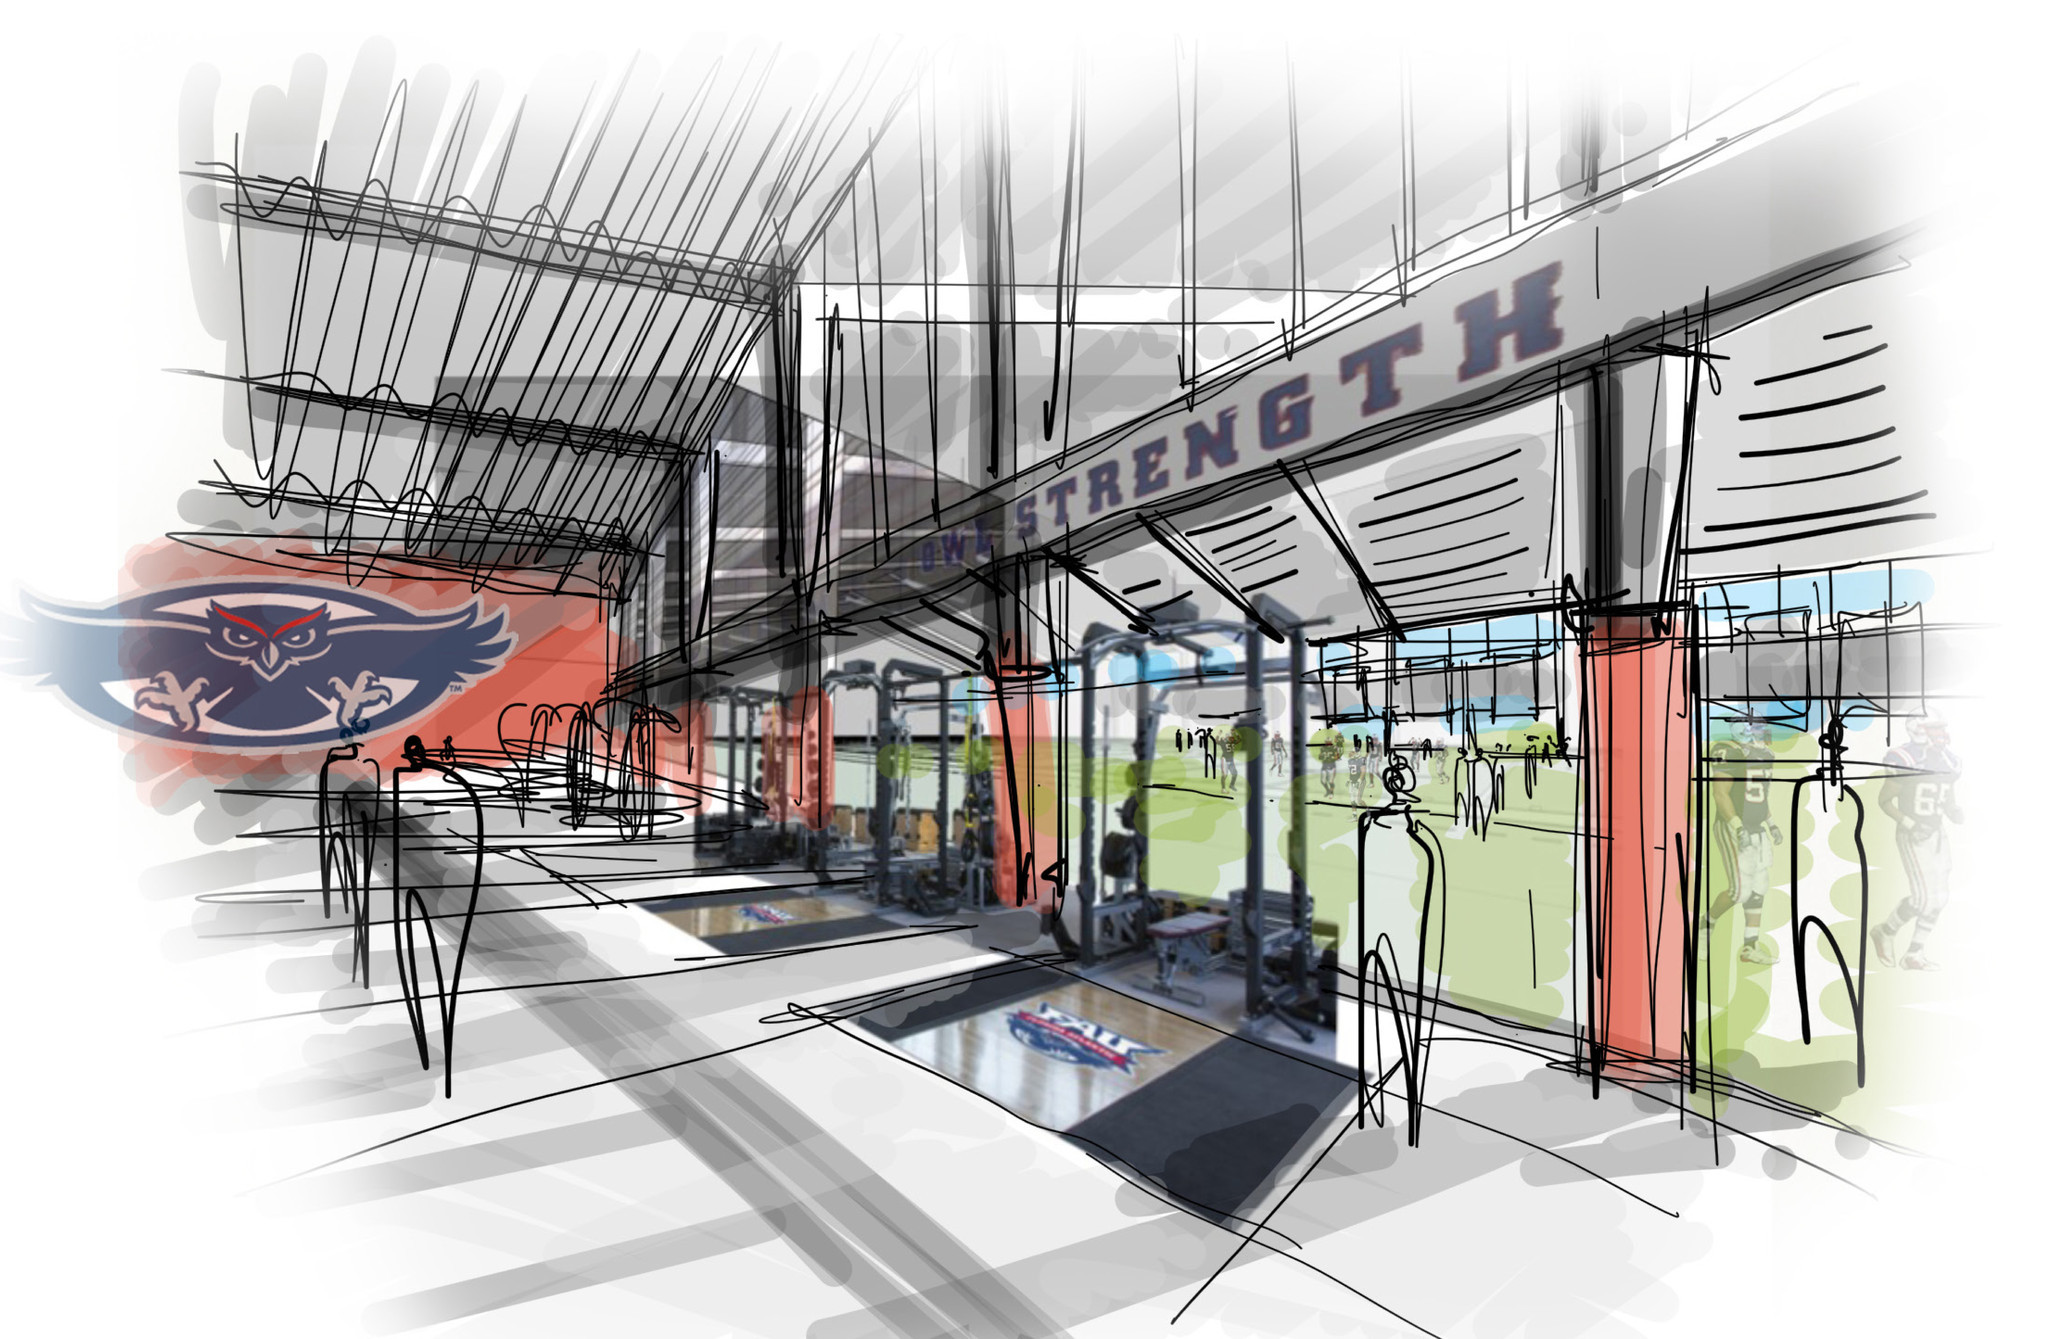 fau lands 16 million donation to help build new athletic facility